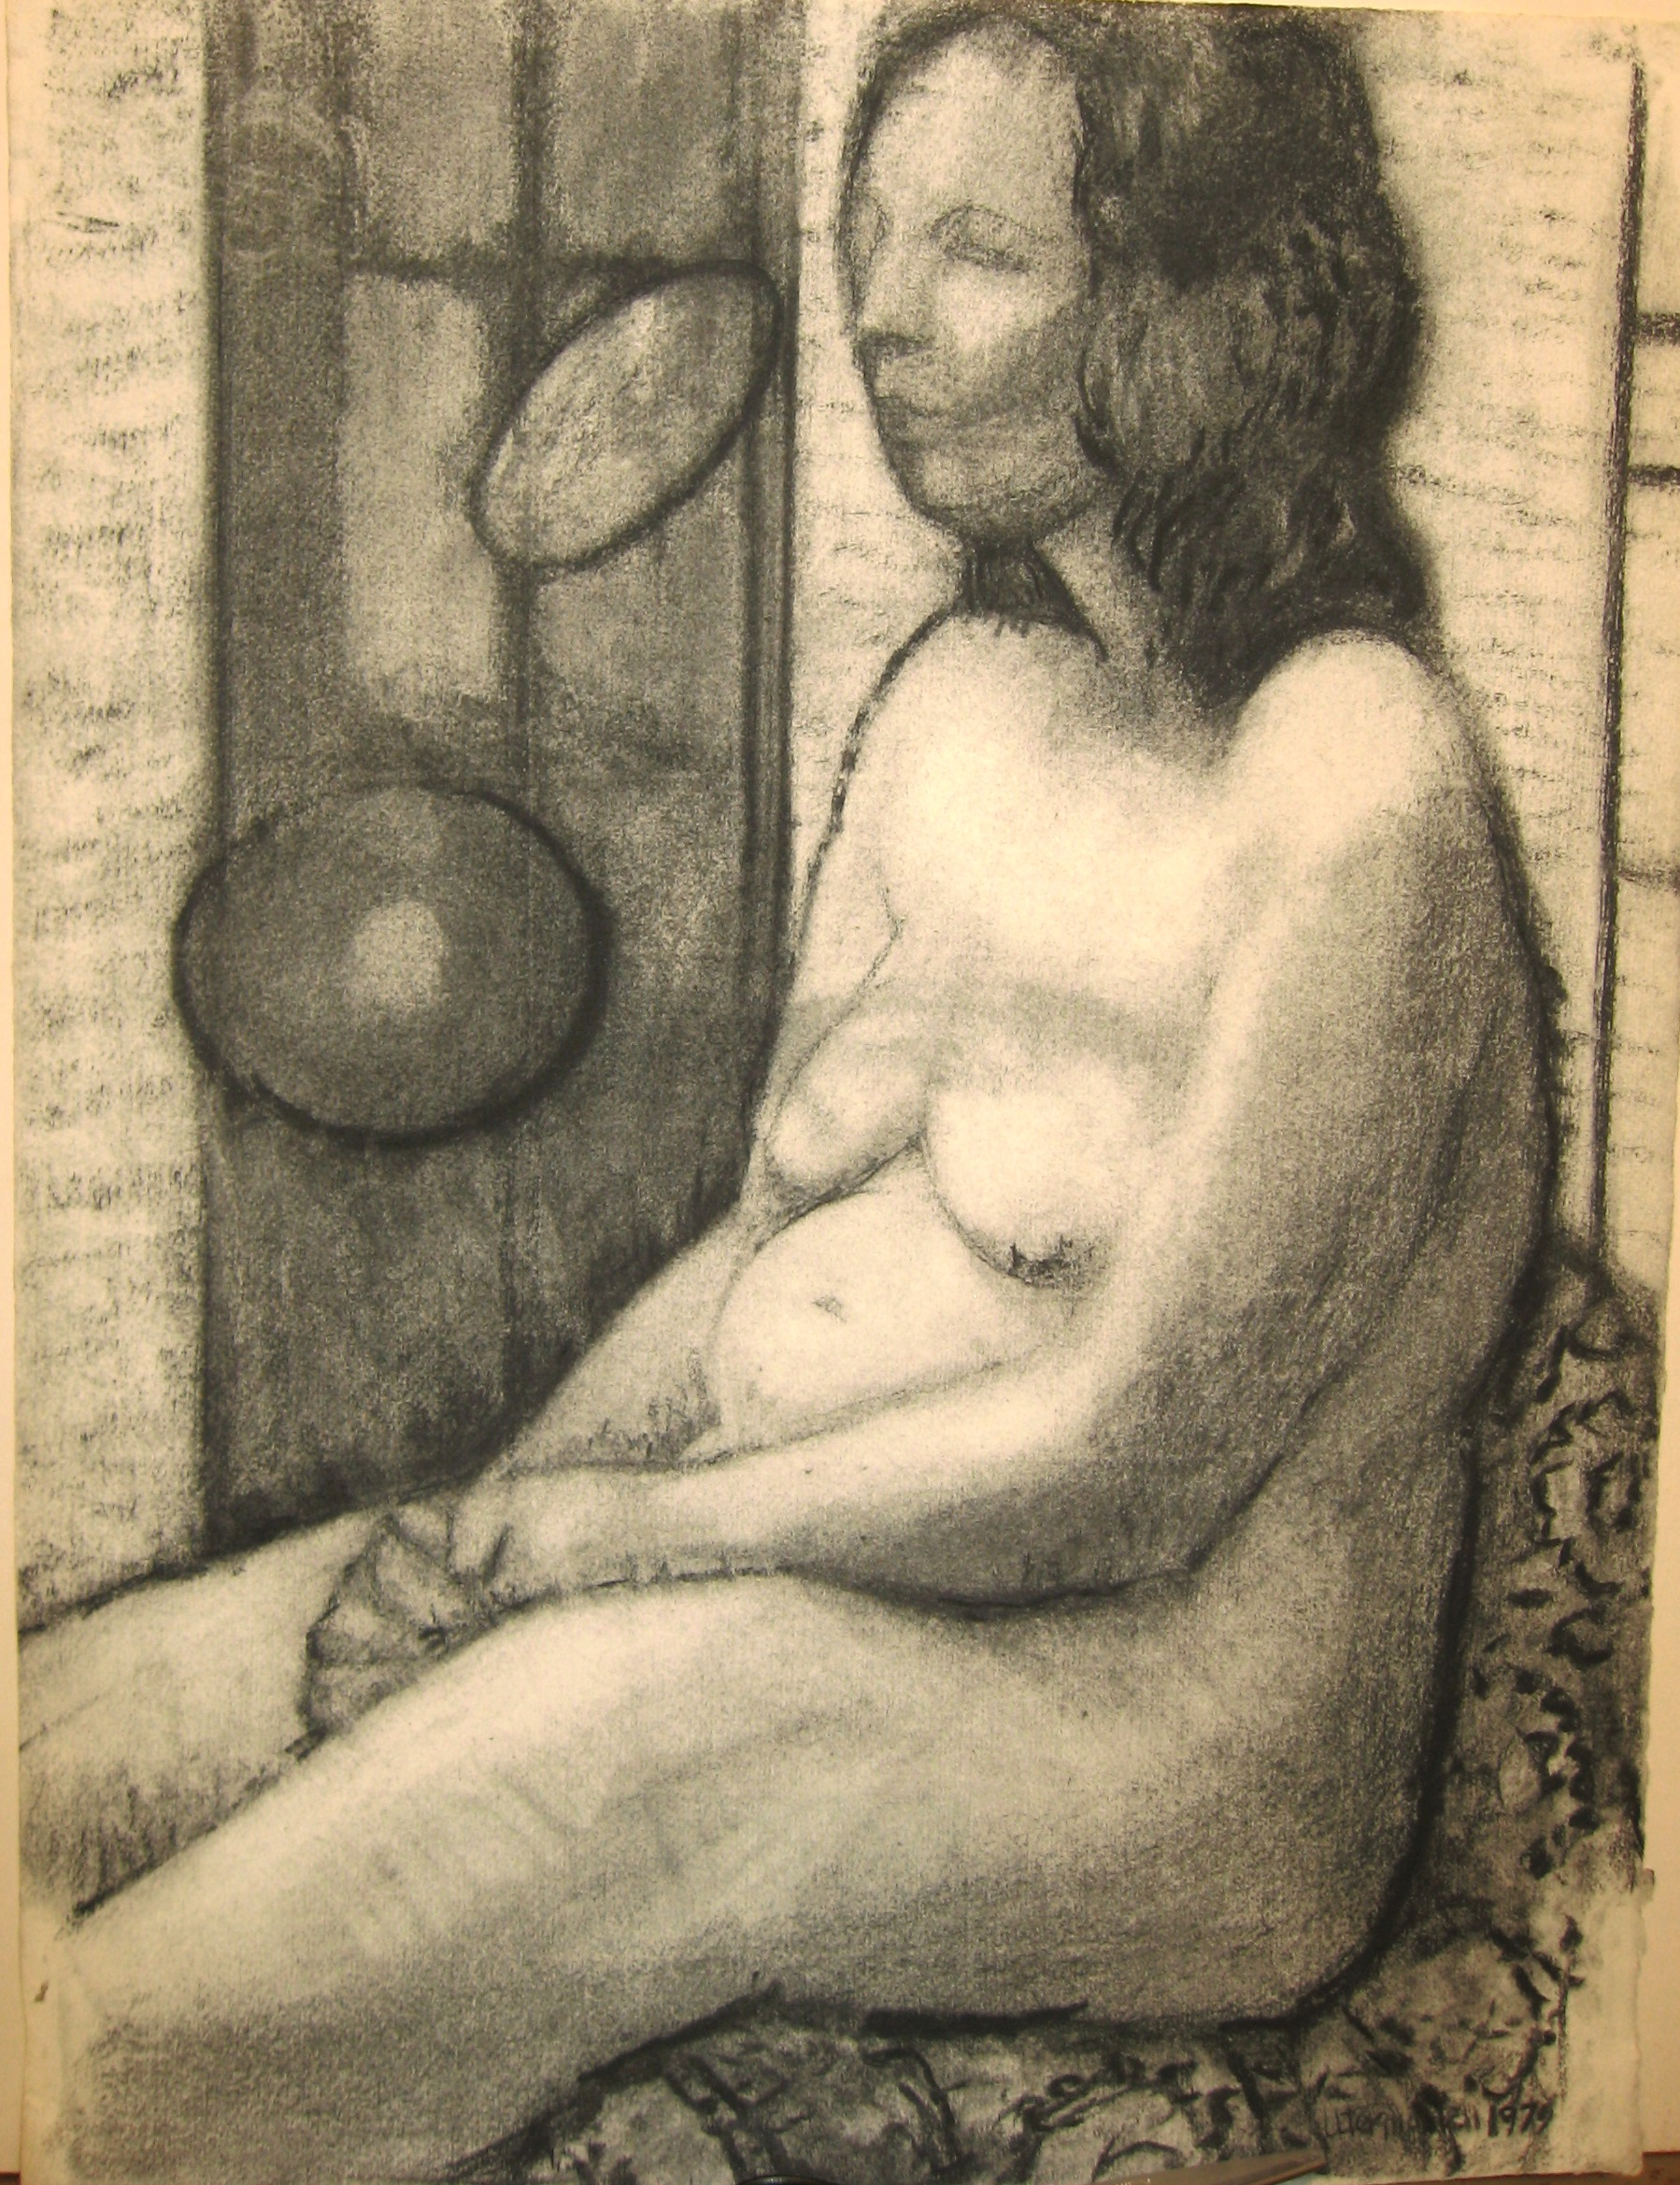 """Plump Model,"" 1979, charcoal, 20x15.5 in."